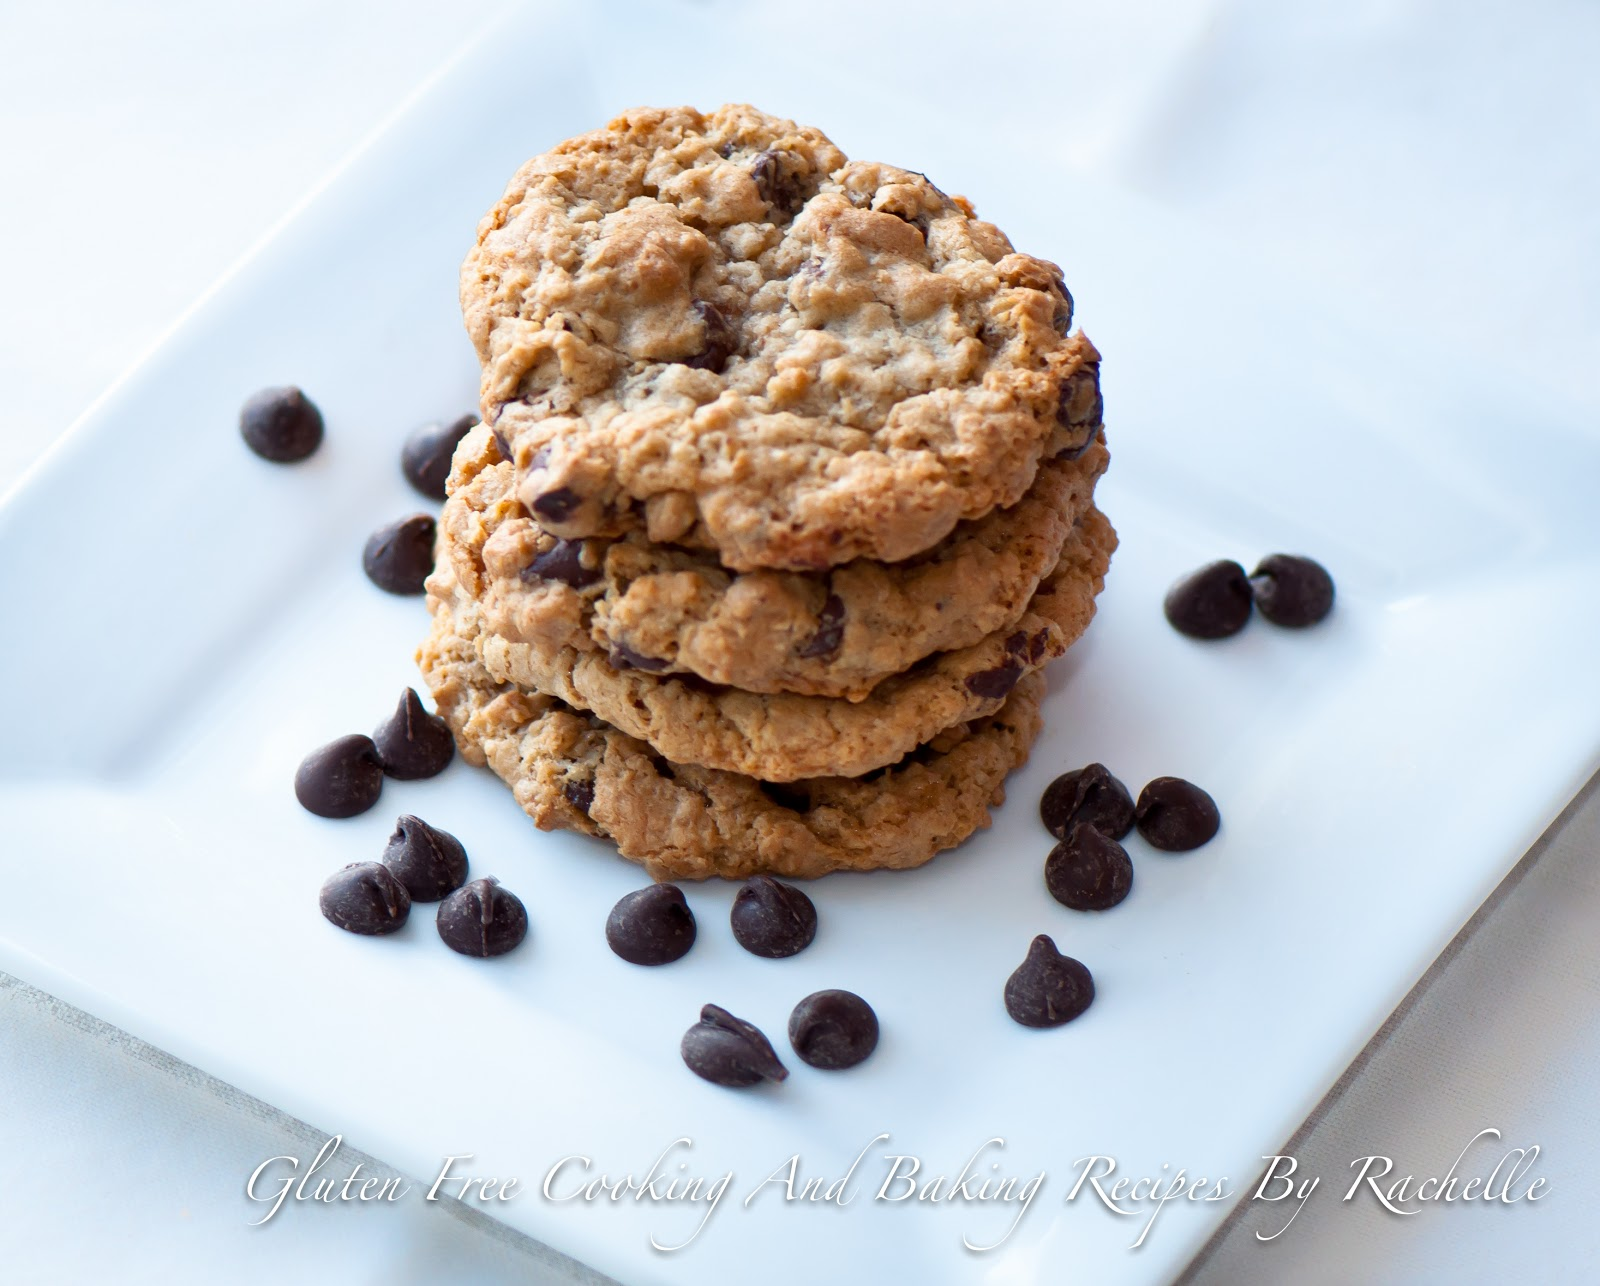 ... By Rachelle: Gluten Free/Dairy Free Oatmeal Chocolate Chip Cookies